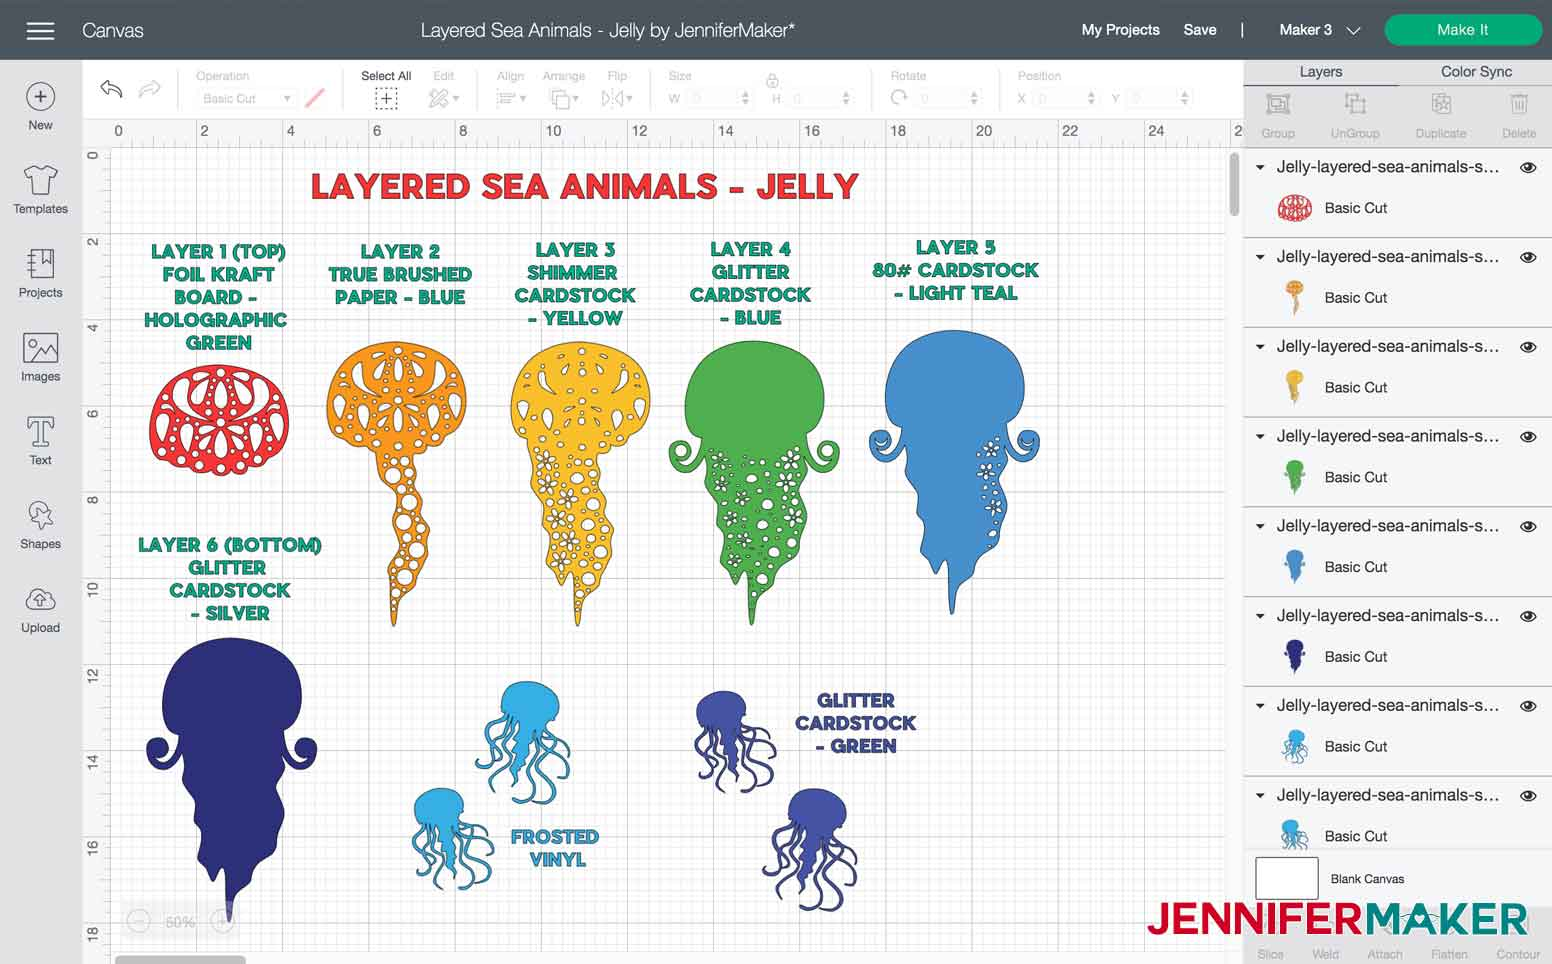 Layers and materials used to make Jelly Layered Sea Animal